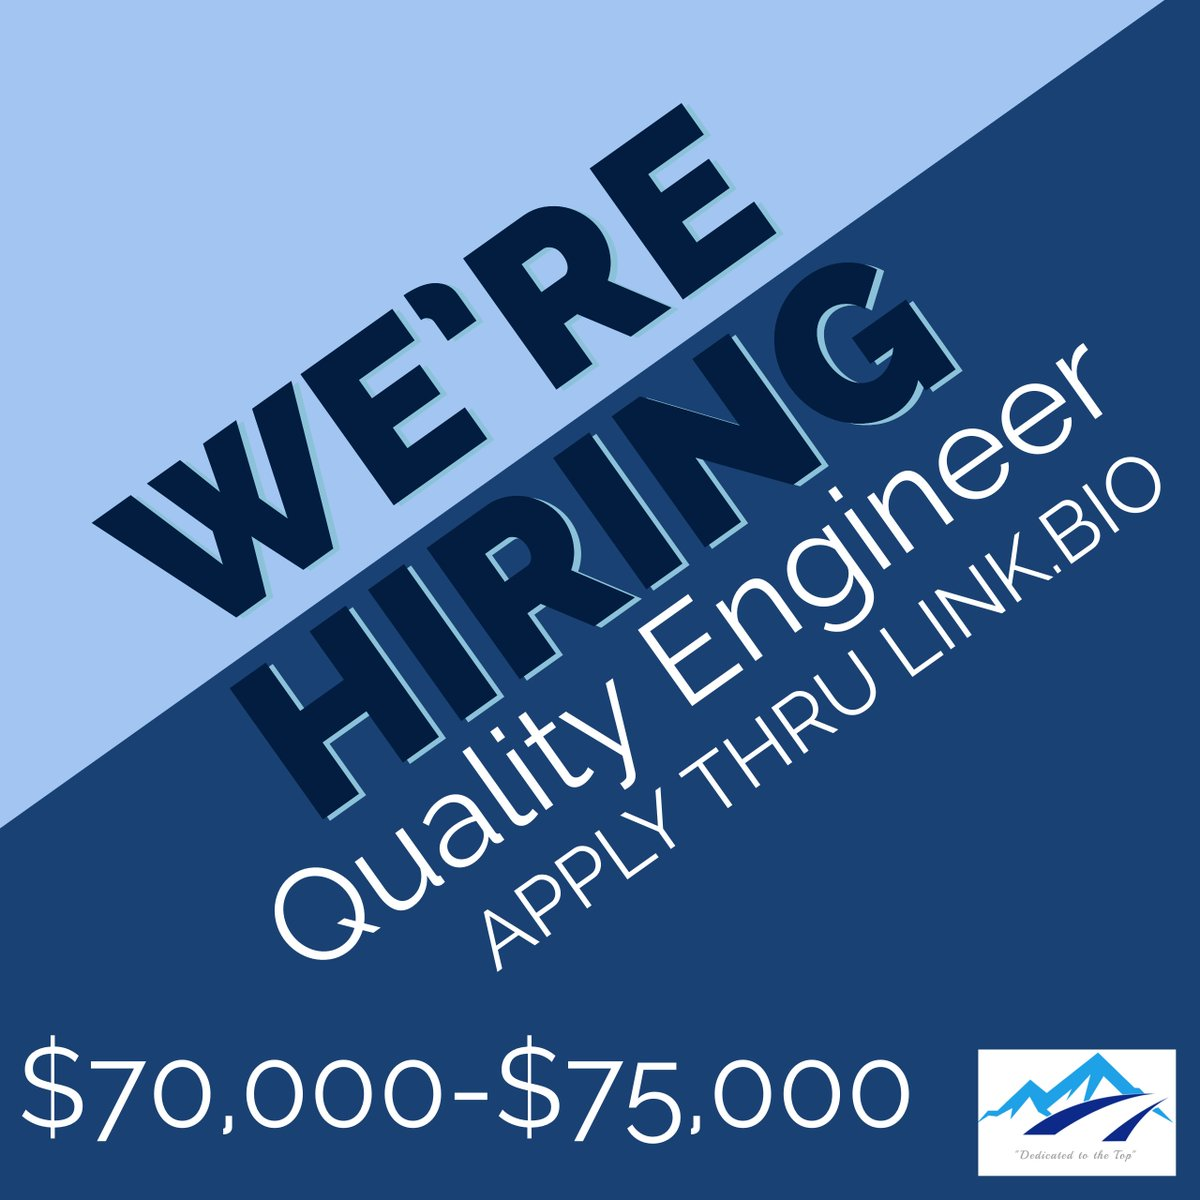 LeConte Recruiting Firm is currently seeking a Quality Engineer for a manufacturing company in North Carolina.   #leconterecruiting #engineeringjobs #engineeringcareers #wearehiring #careergoals #engineeringpost #engineers #womenintech #femaleengineerspic.twitter.com/w3ef1WmScc